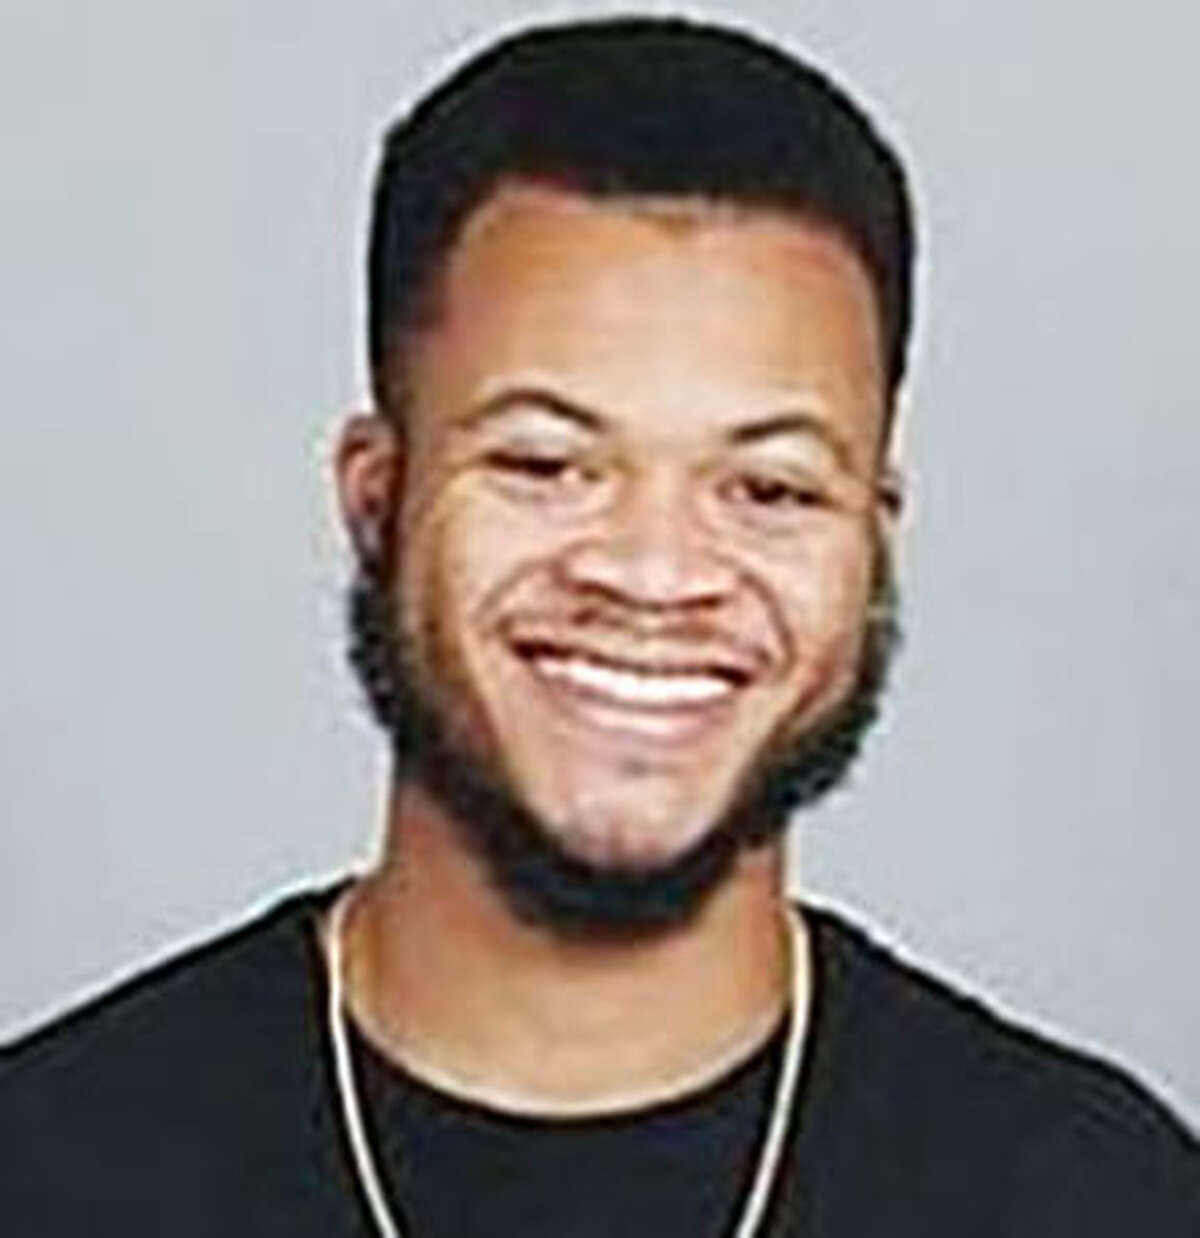 Carl Conyers, a University of Houston student, was last seen by his roommate in their apartment in the 3700 block of Southmore on 11.15.16.